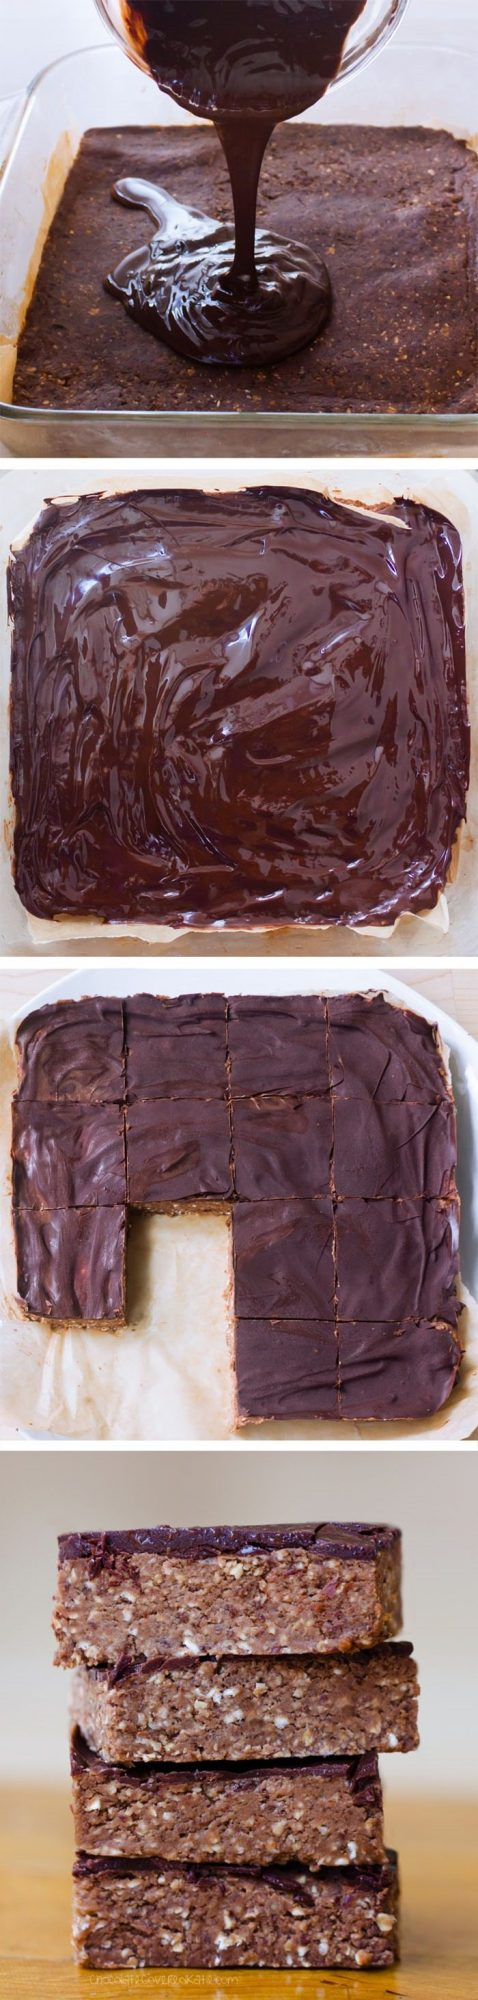 Chocolate Breakfast Bars – Ingredients: 1 cup rolled oats, 3 tbsp cocoa powder, 1 tbsp vanilla extract, 1 1/2 cups… Full recipe: http://chocolatecoveredkatie.com @choccoveredkt